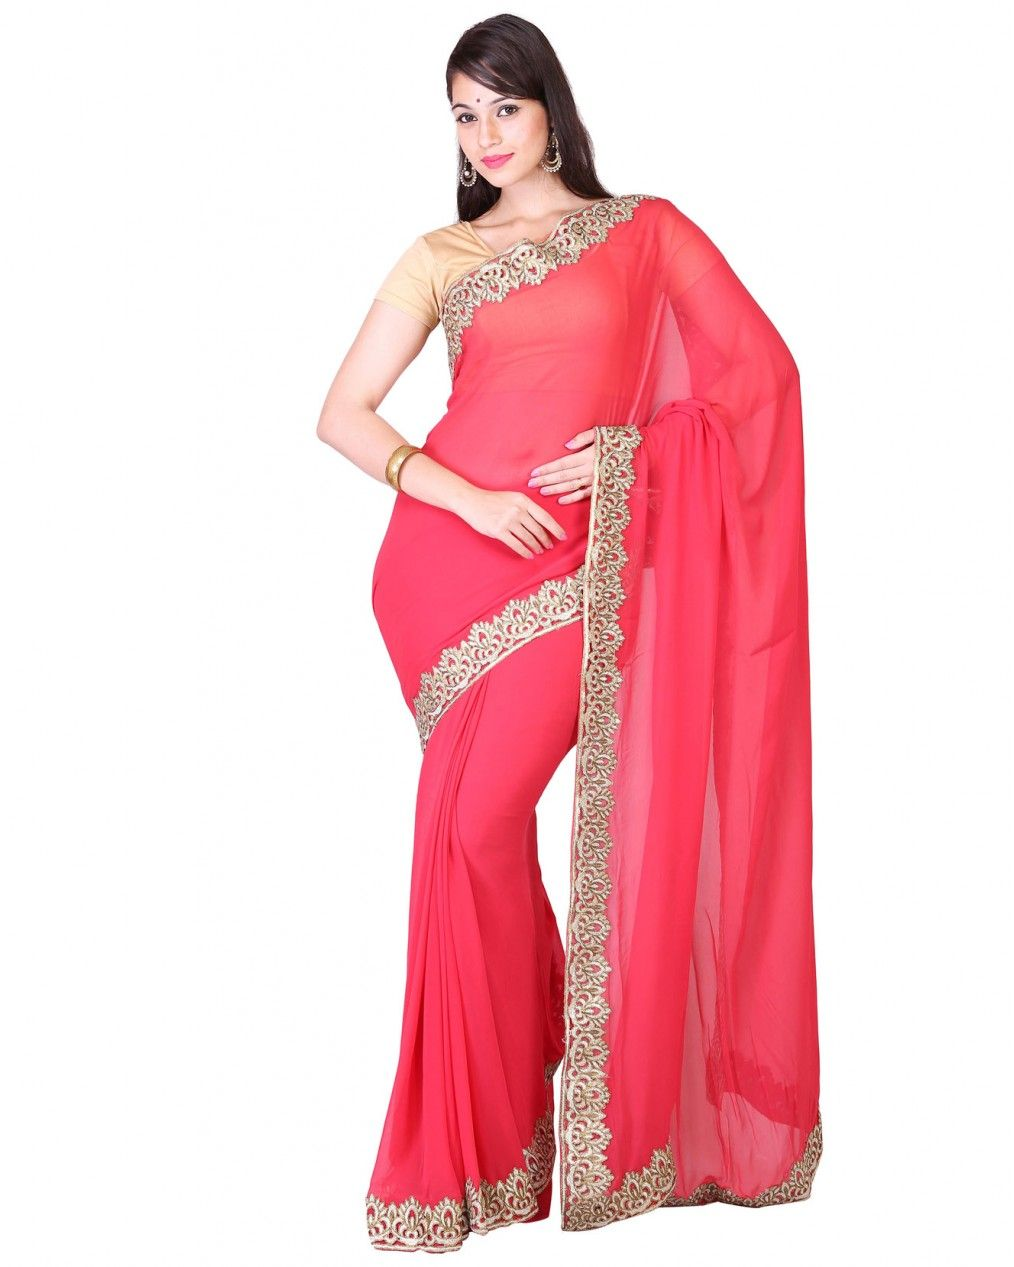 79645bf389 Pure soft georgette saree of 5.5 - 6 meters in length, not inclusive of  blouse piece suits for any occasion.